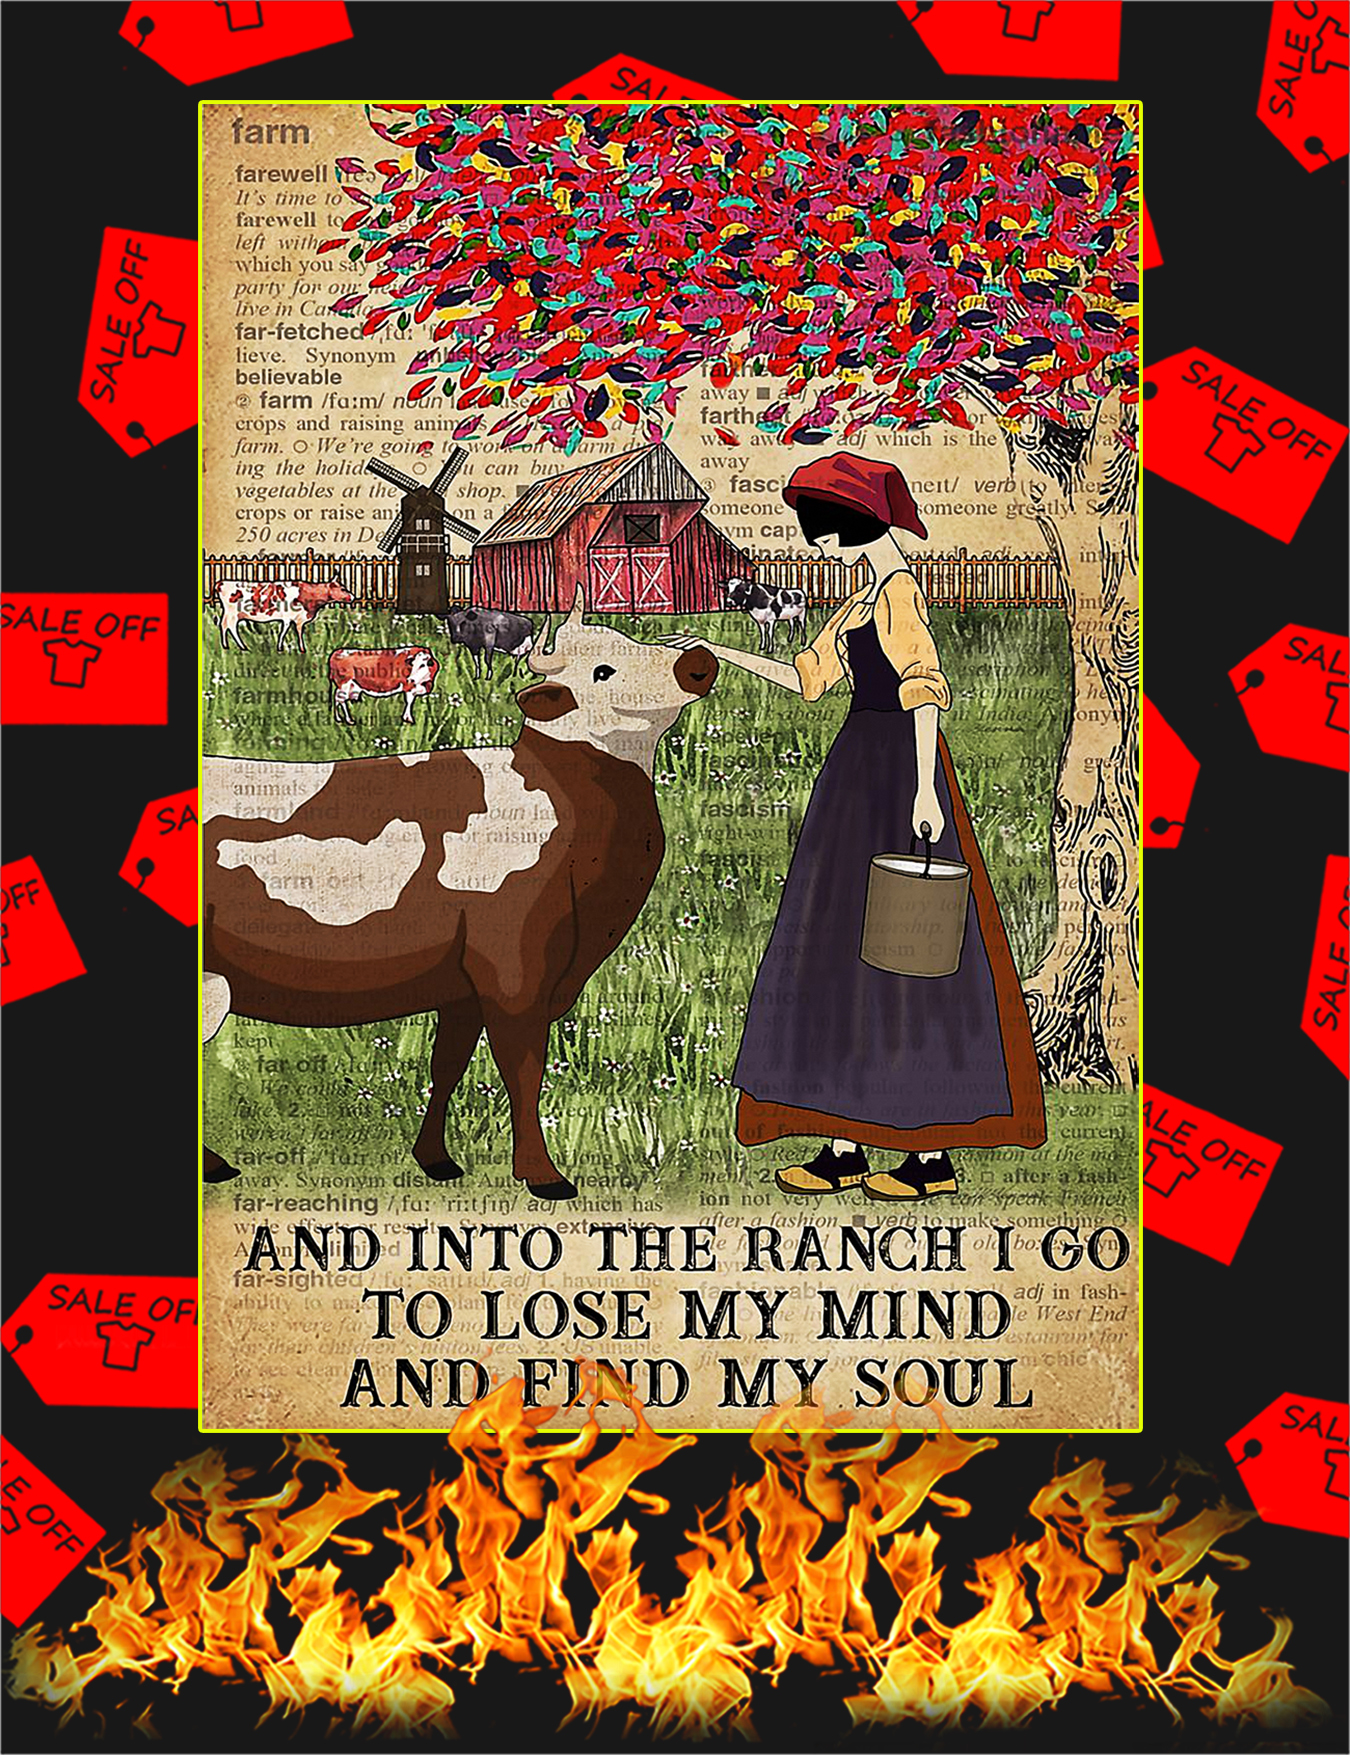 Dictionary cattle farm girl And into the ranch I go to lose my mind and find my soul poster - A3